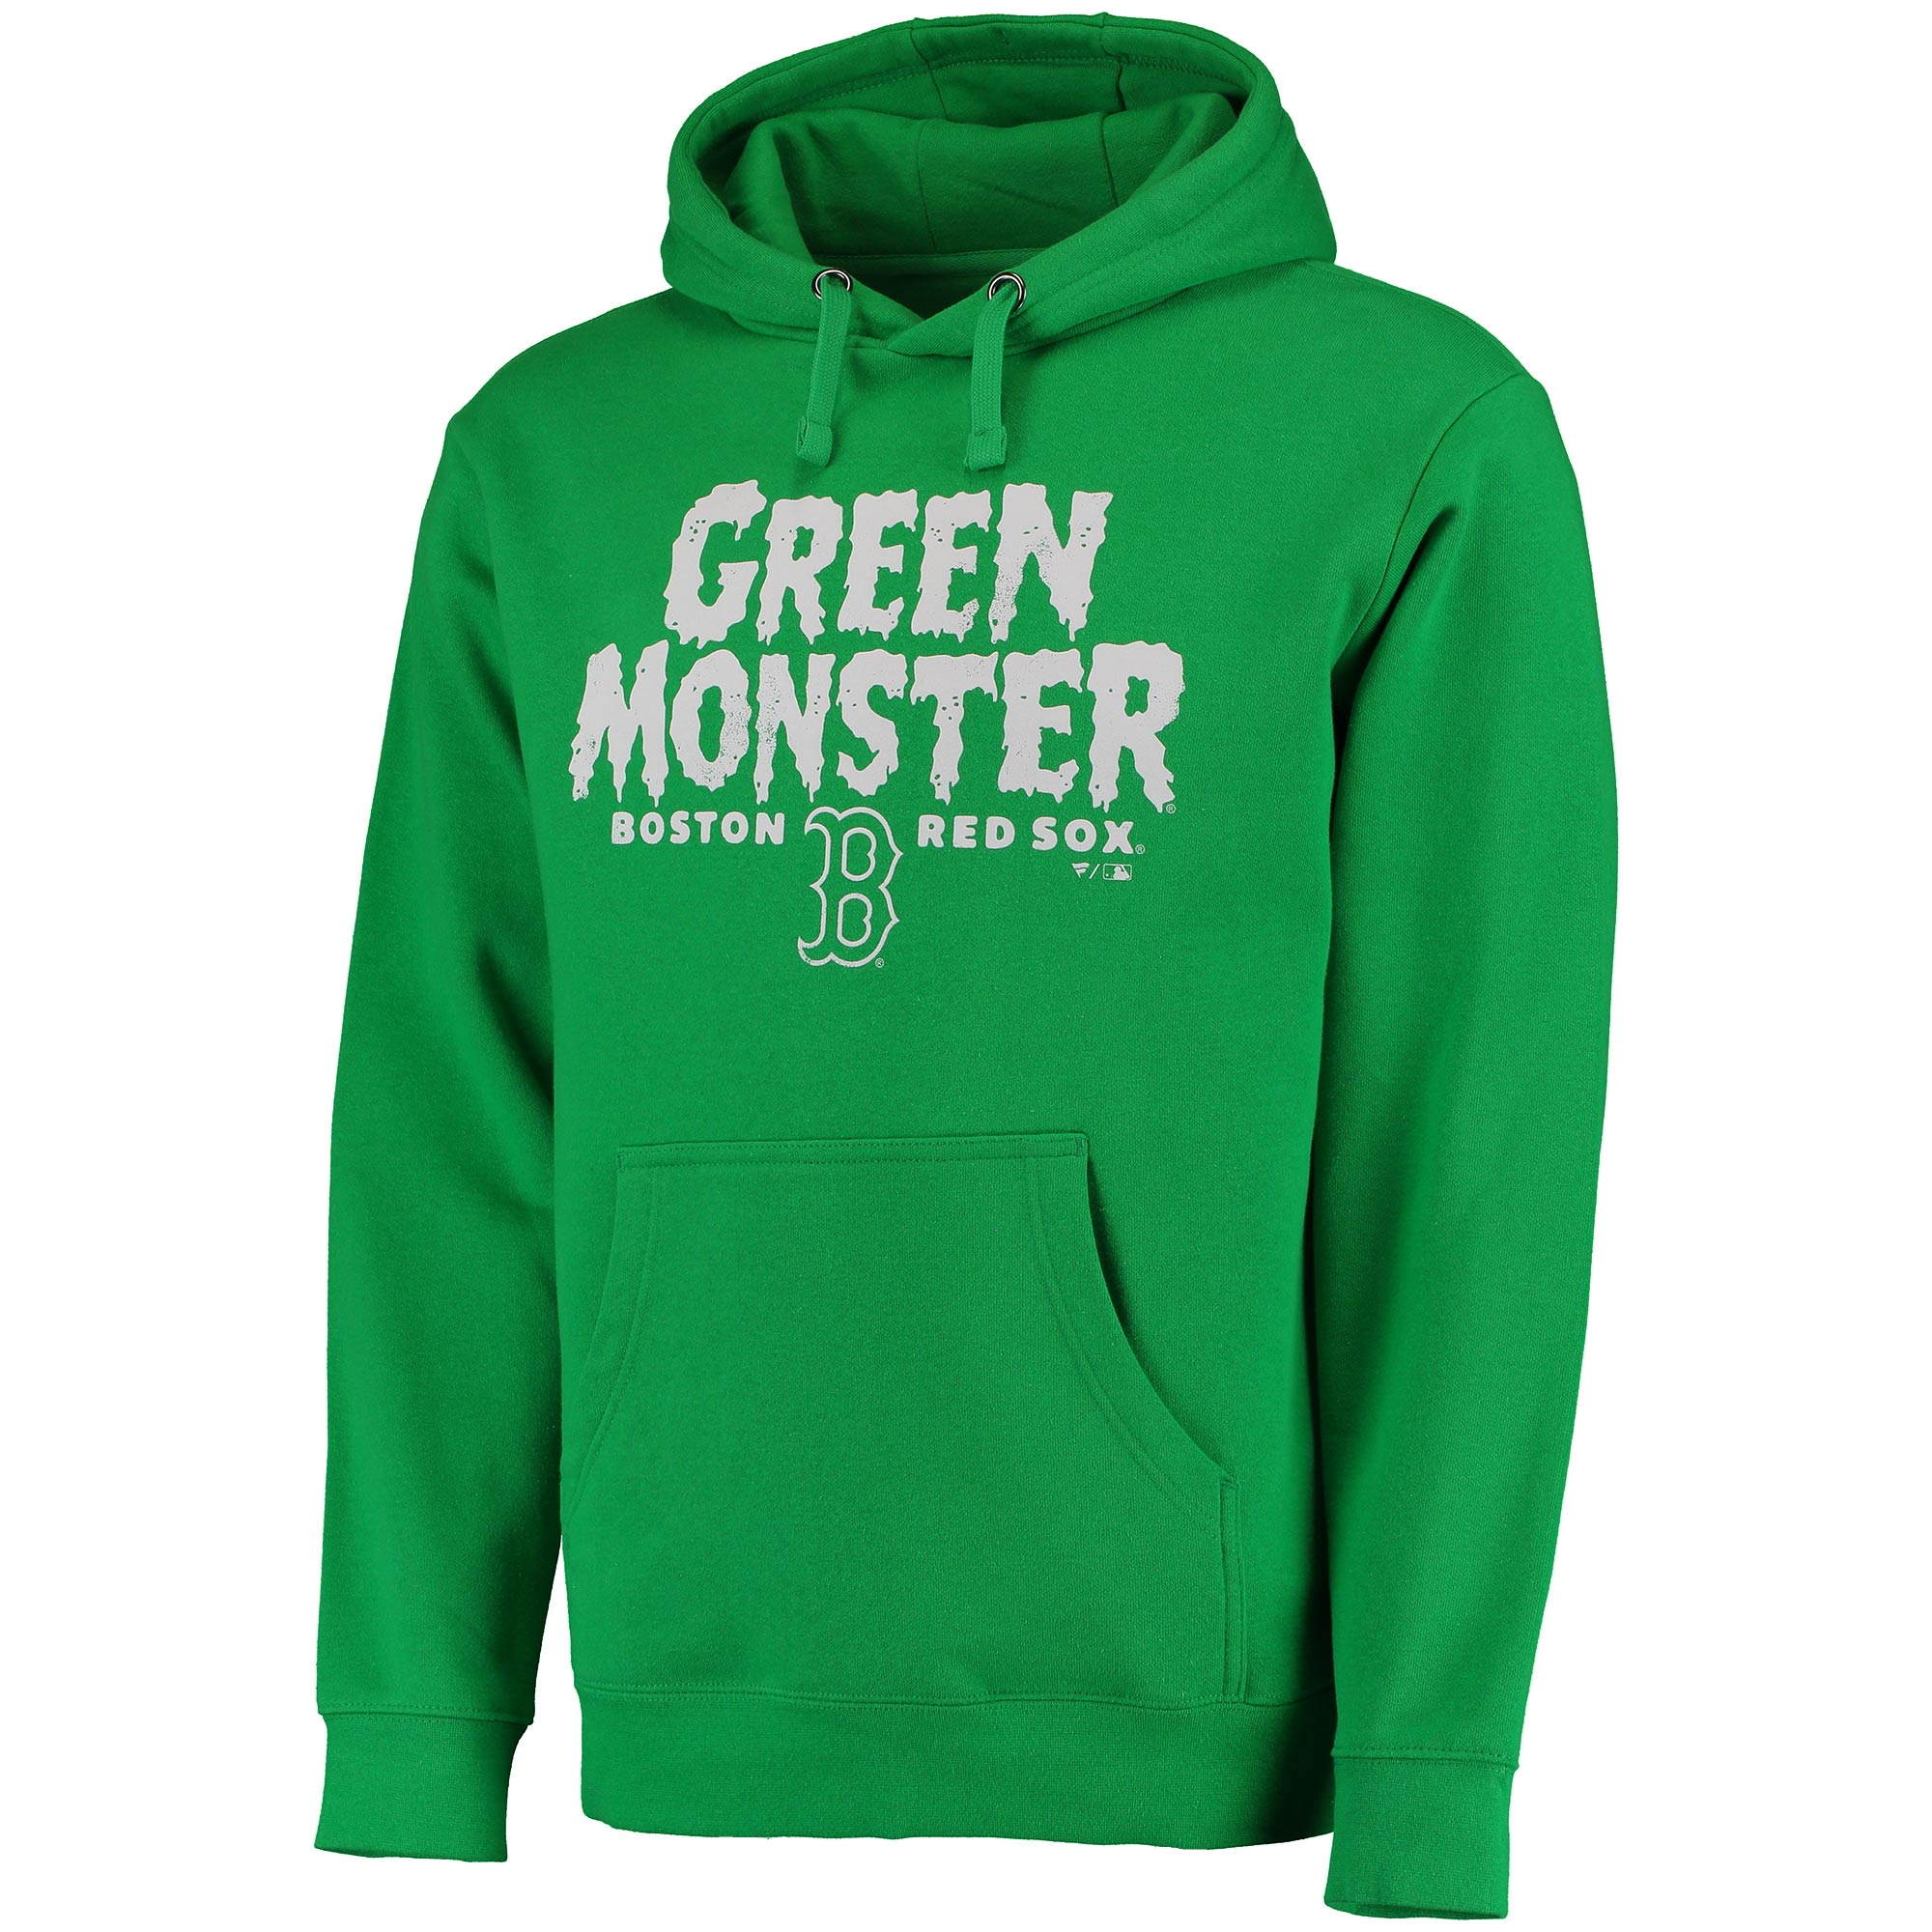 Men's Kelly Green Boston Red Sox Monster Hometown Pullover Hoodie